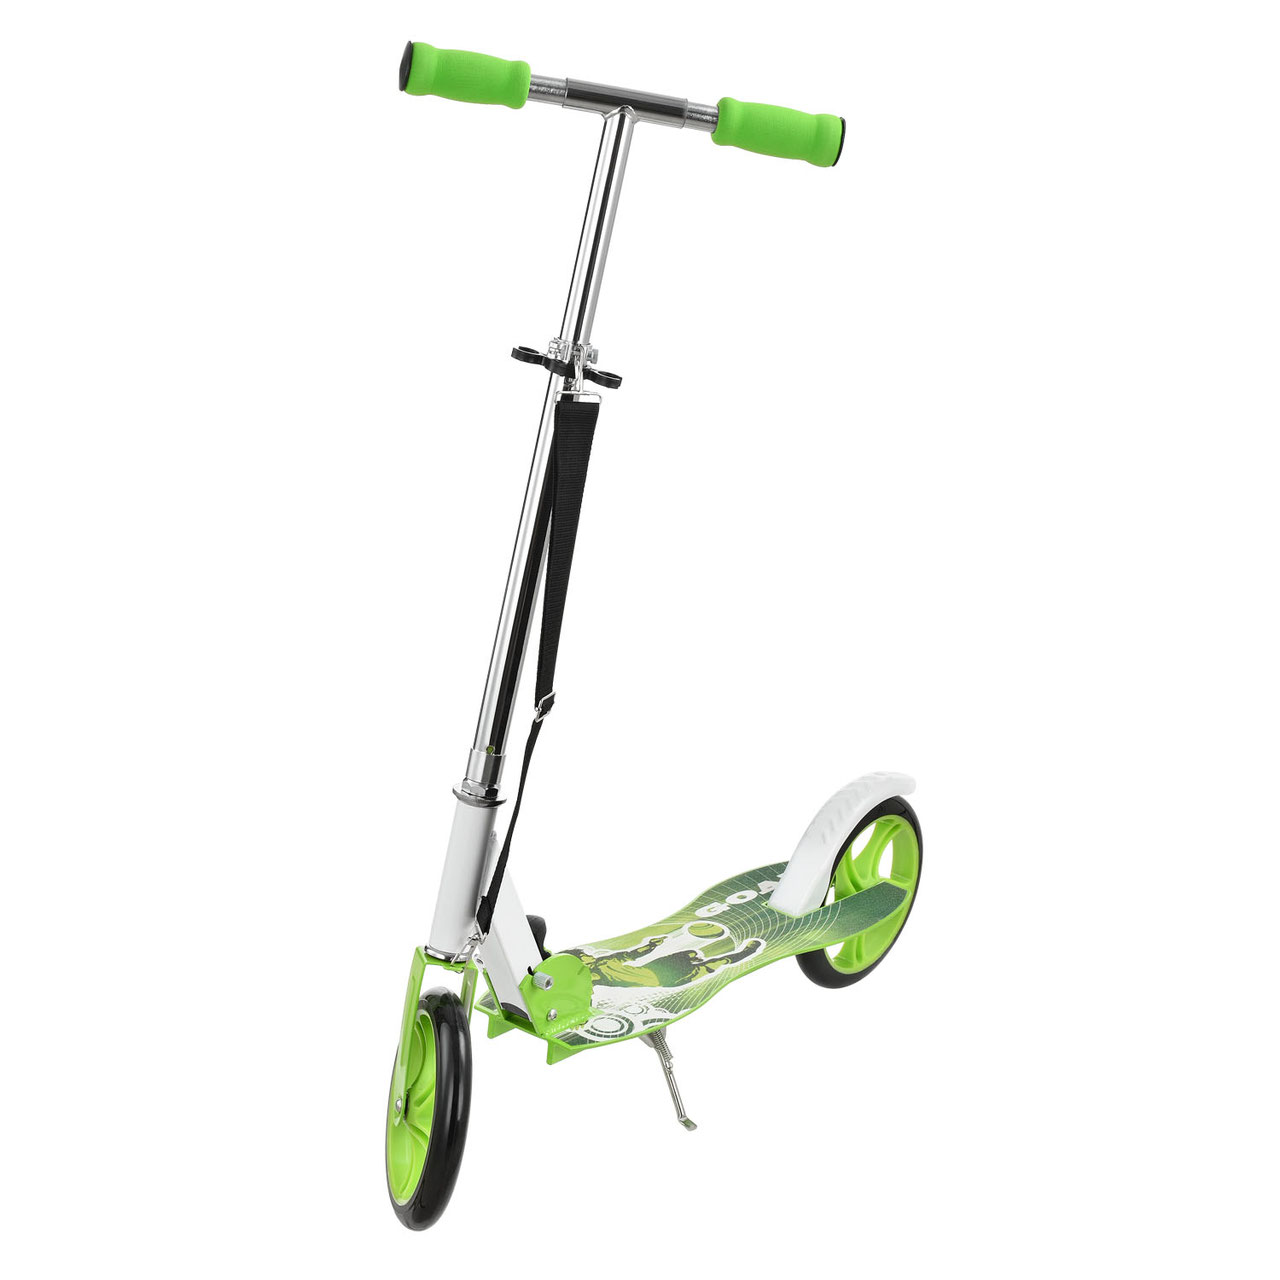 Cityroller/Go-Kart - Non Food Products